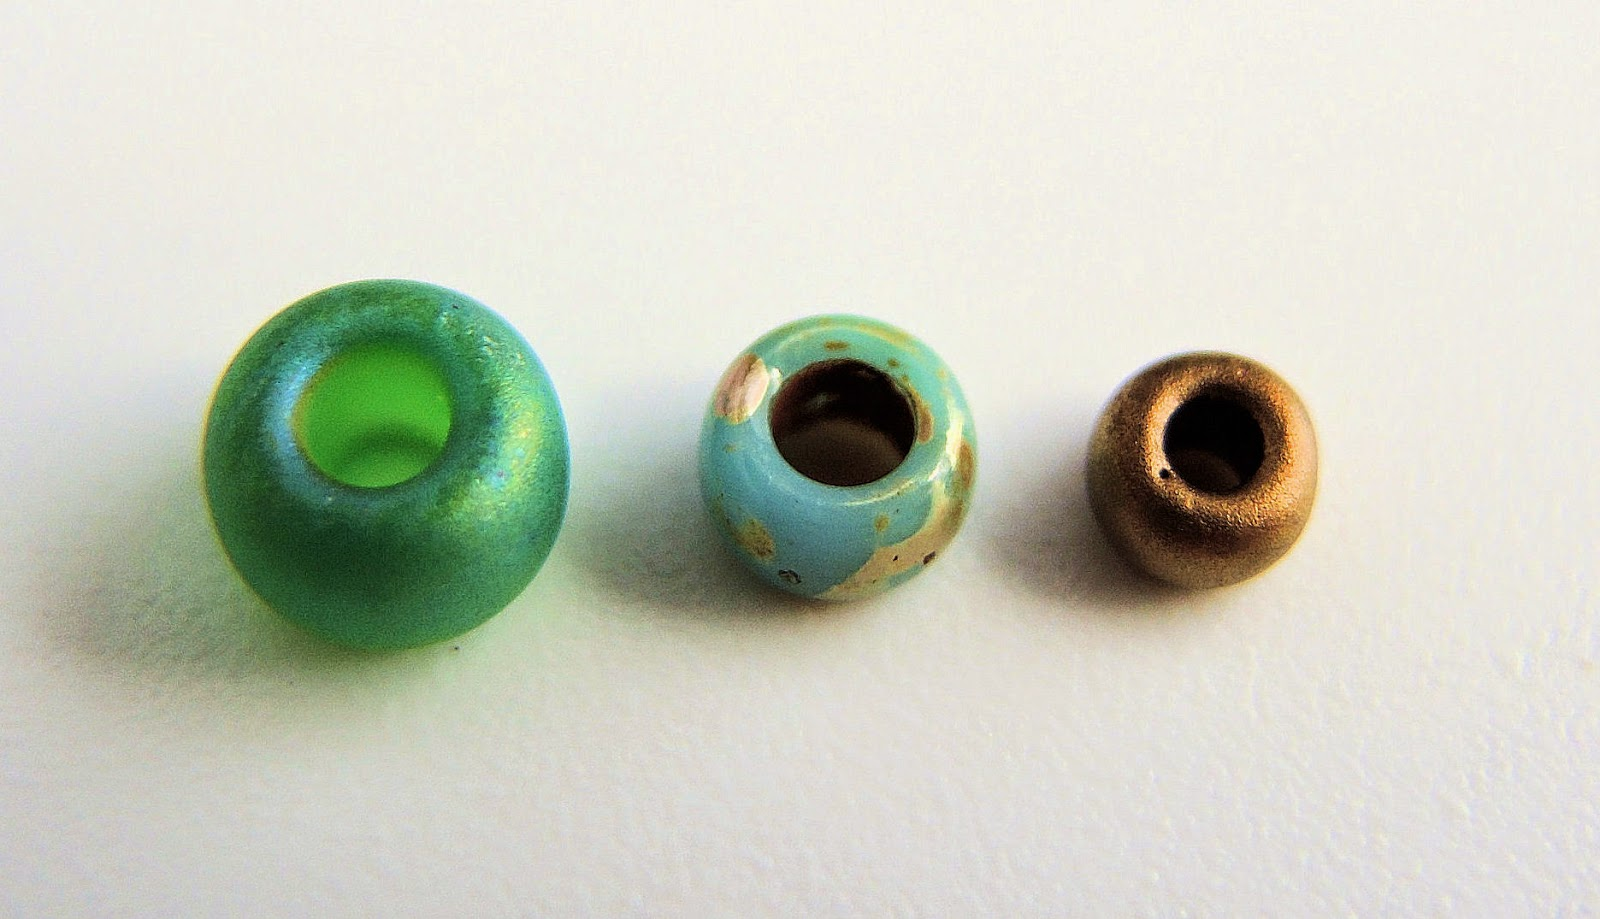 Bead size comparison